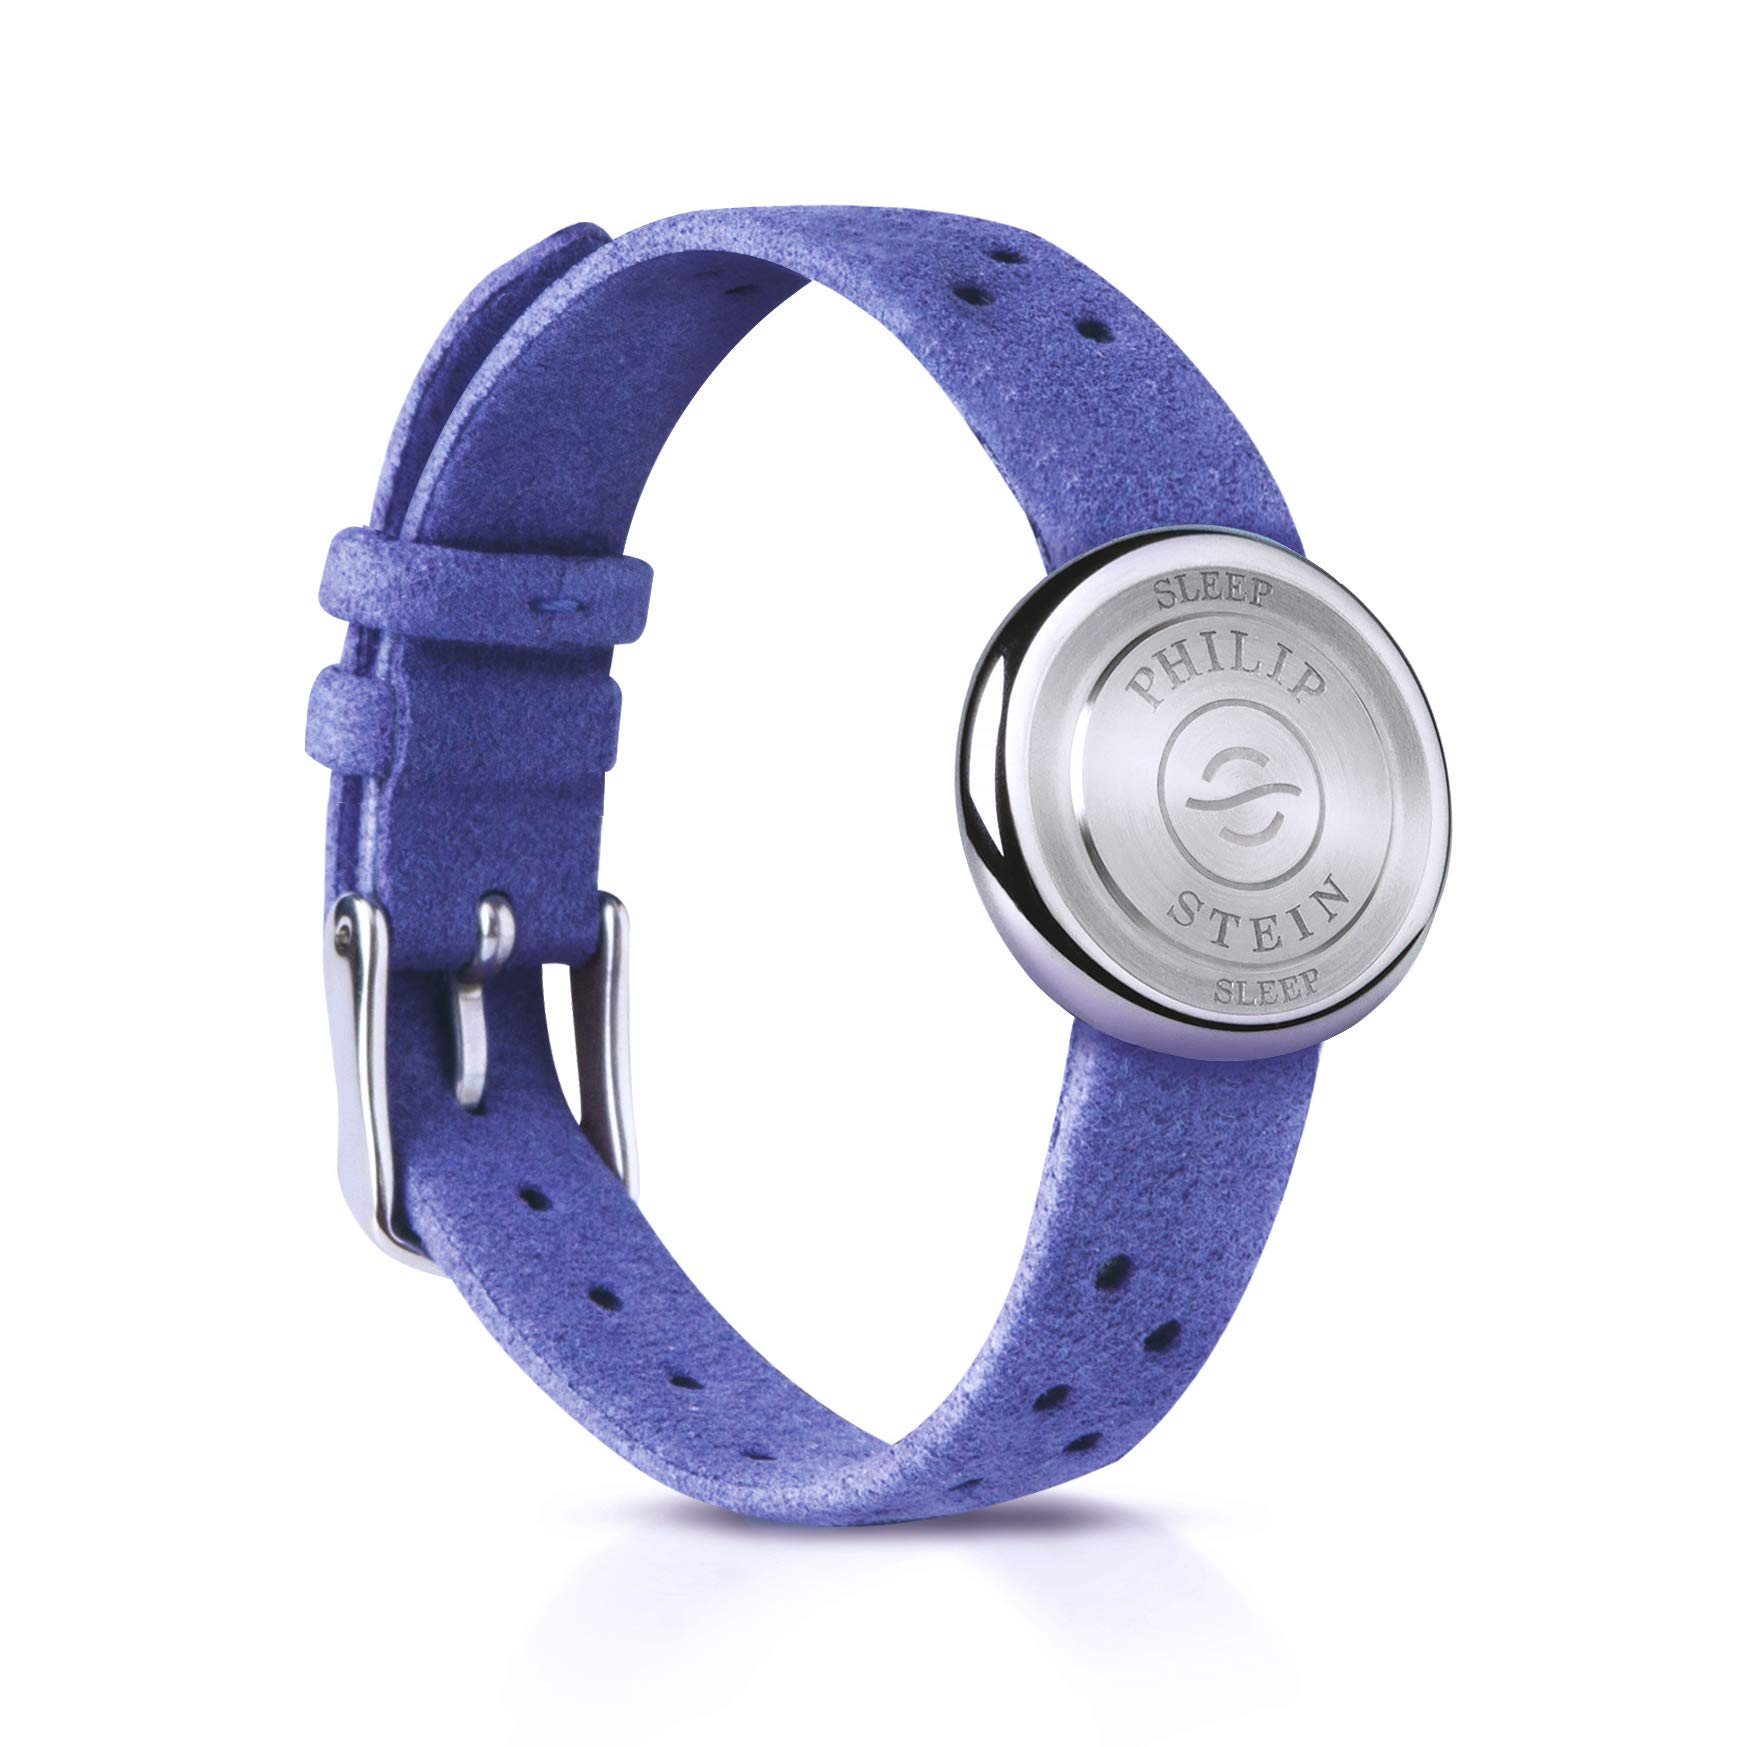 Sleep Bracelet Nano by Philip Stein with Sleep Aid Natural Frequency Technology - No Batteries Needed, Unisex for Men and Women, Blue Strap by Philip Stein